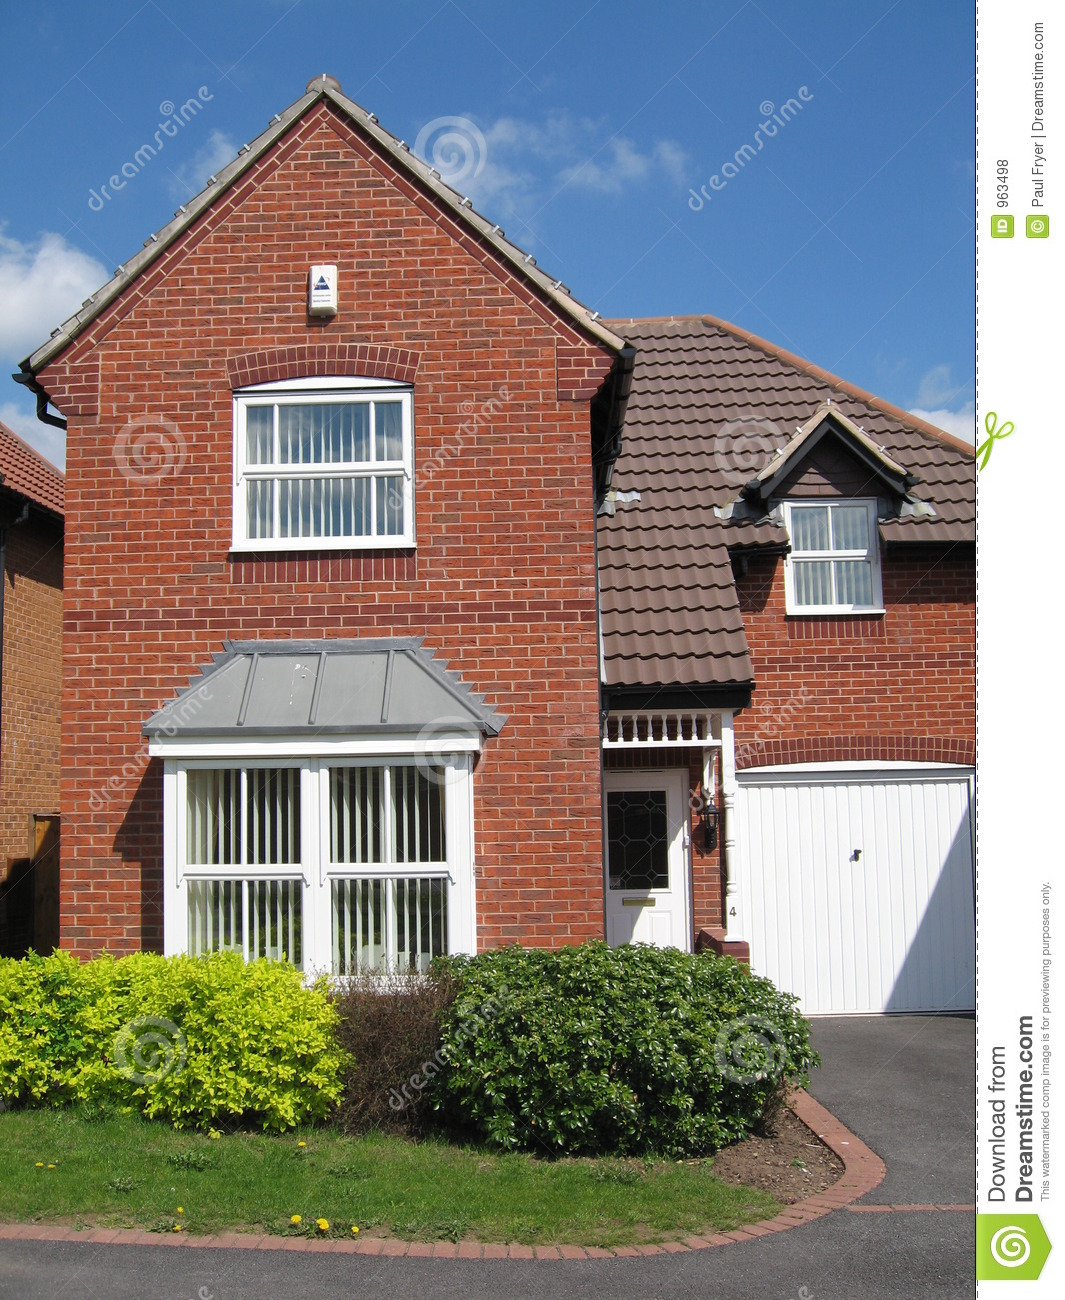 Red brick house uk royalty free stock photos image 963498 House photos gallery